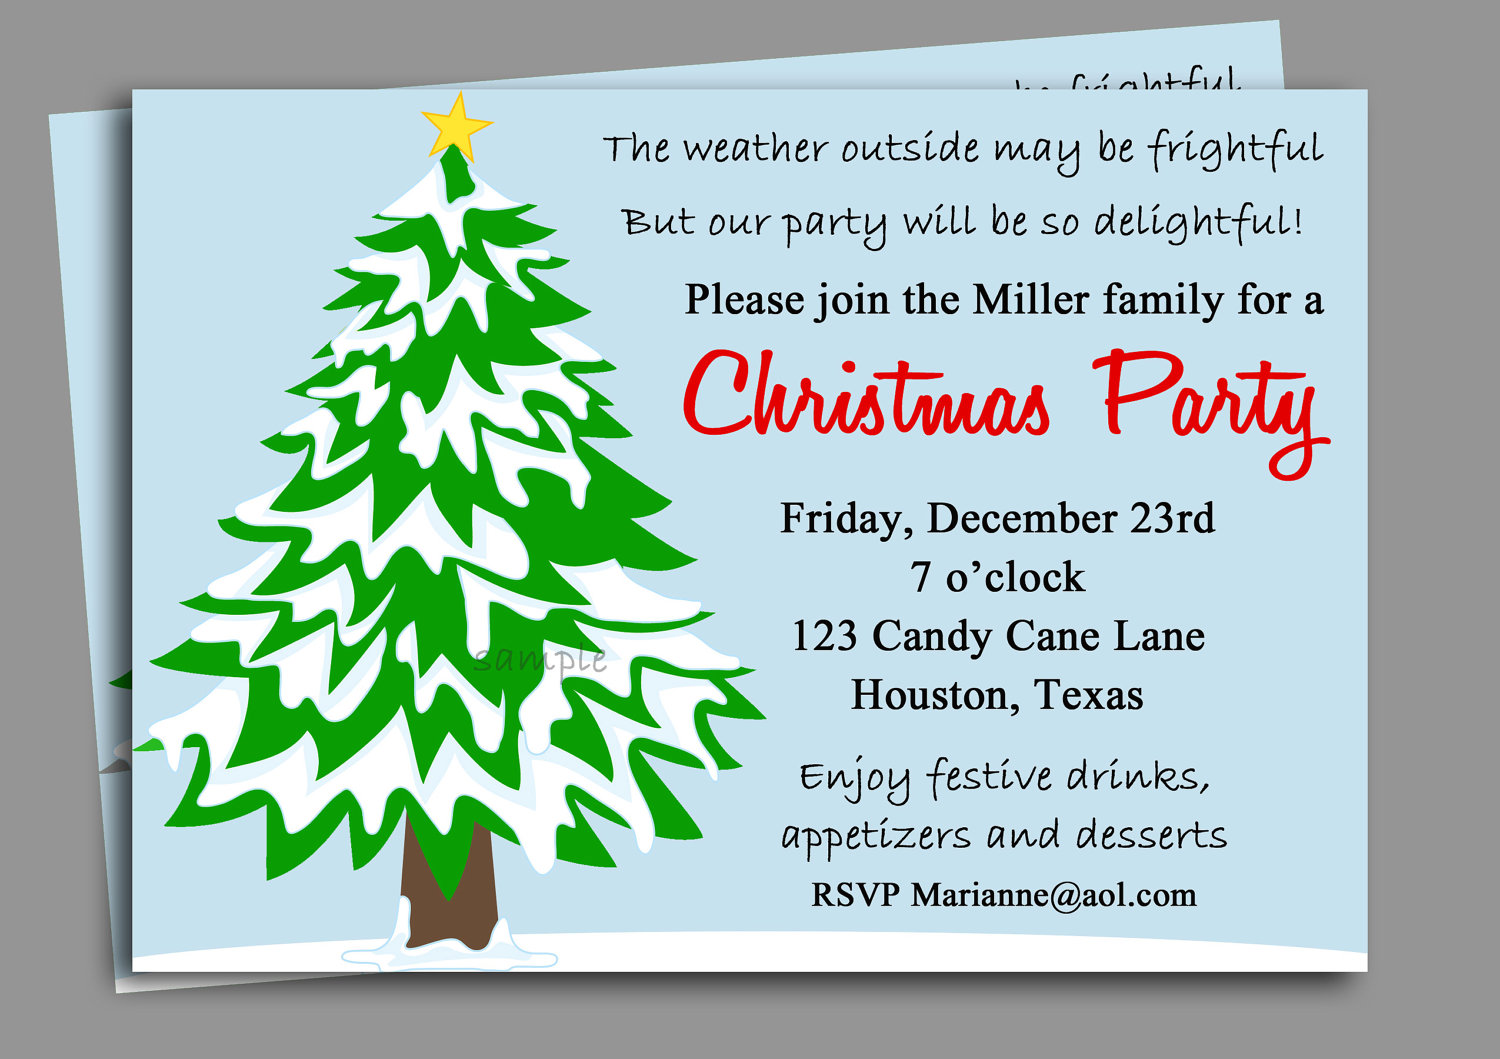 Christmas Party Invitation Wordings For Staff – Abdw